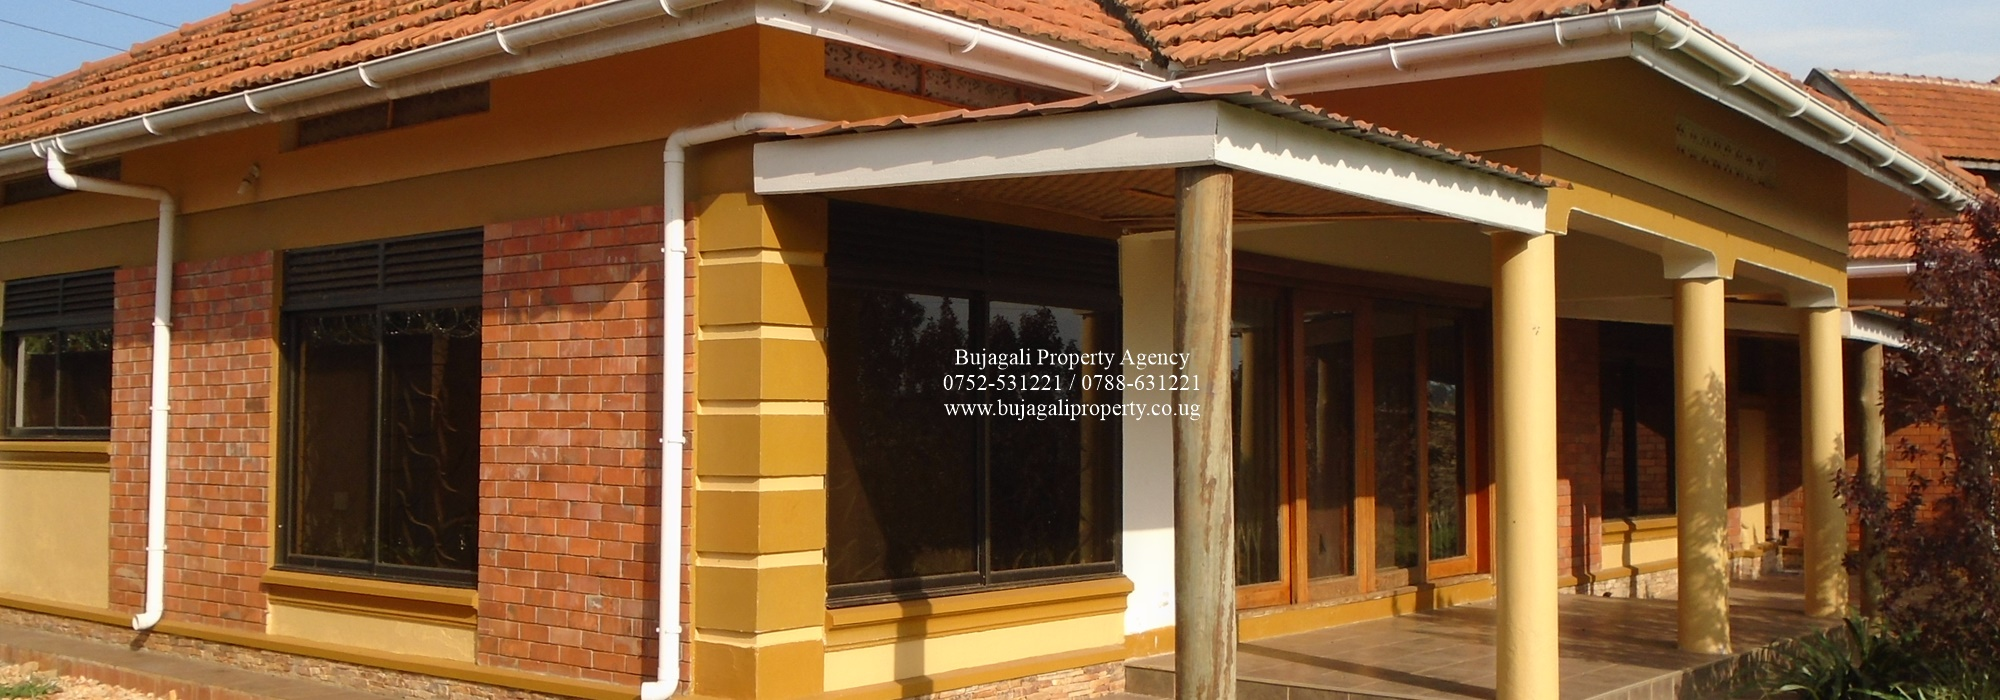 FOUR BEDROOM RESIDENTIAL HOUSE TO LET IN JINJA